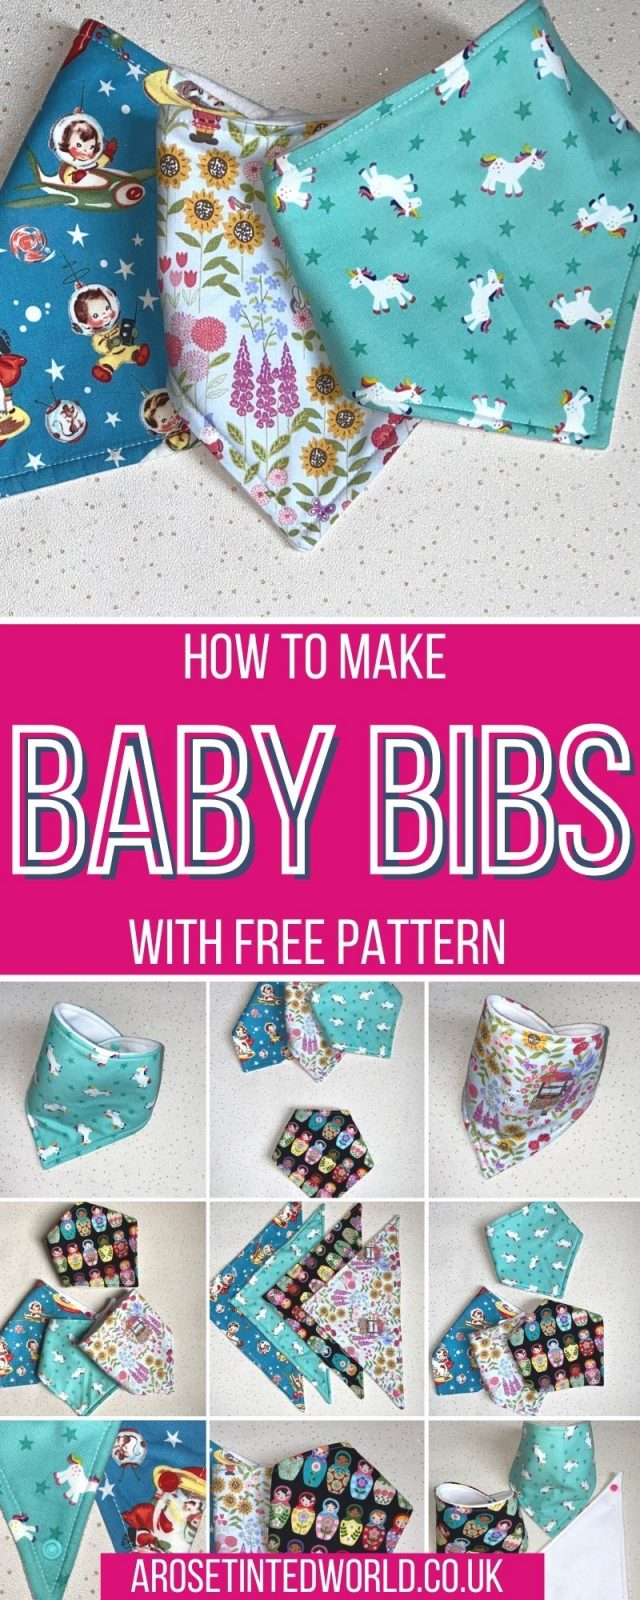 How to make baby bibs - learn to sew your own baby bandana dribble bib using this easy sewing tutorial & free baby bib pattern. Beginner sewing project ideal for a novice. Great gift idea, perfect for last minute baby shower presents. Simple sewing projects in less than 15 minutes. Sewing project that oyu can sell at craft fairs and school fundraisers. How to make a baby bib.